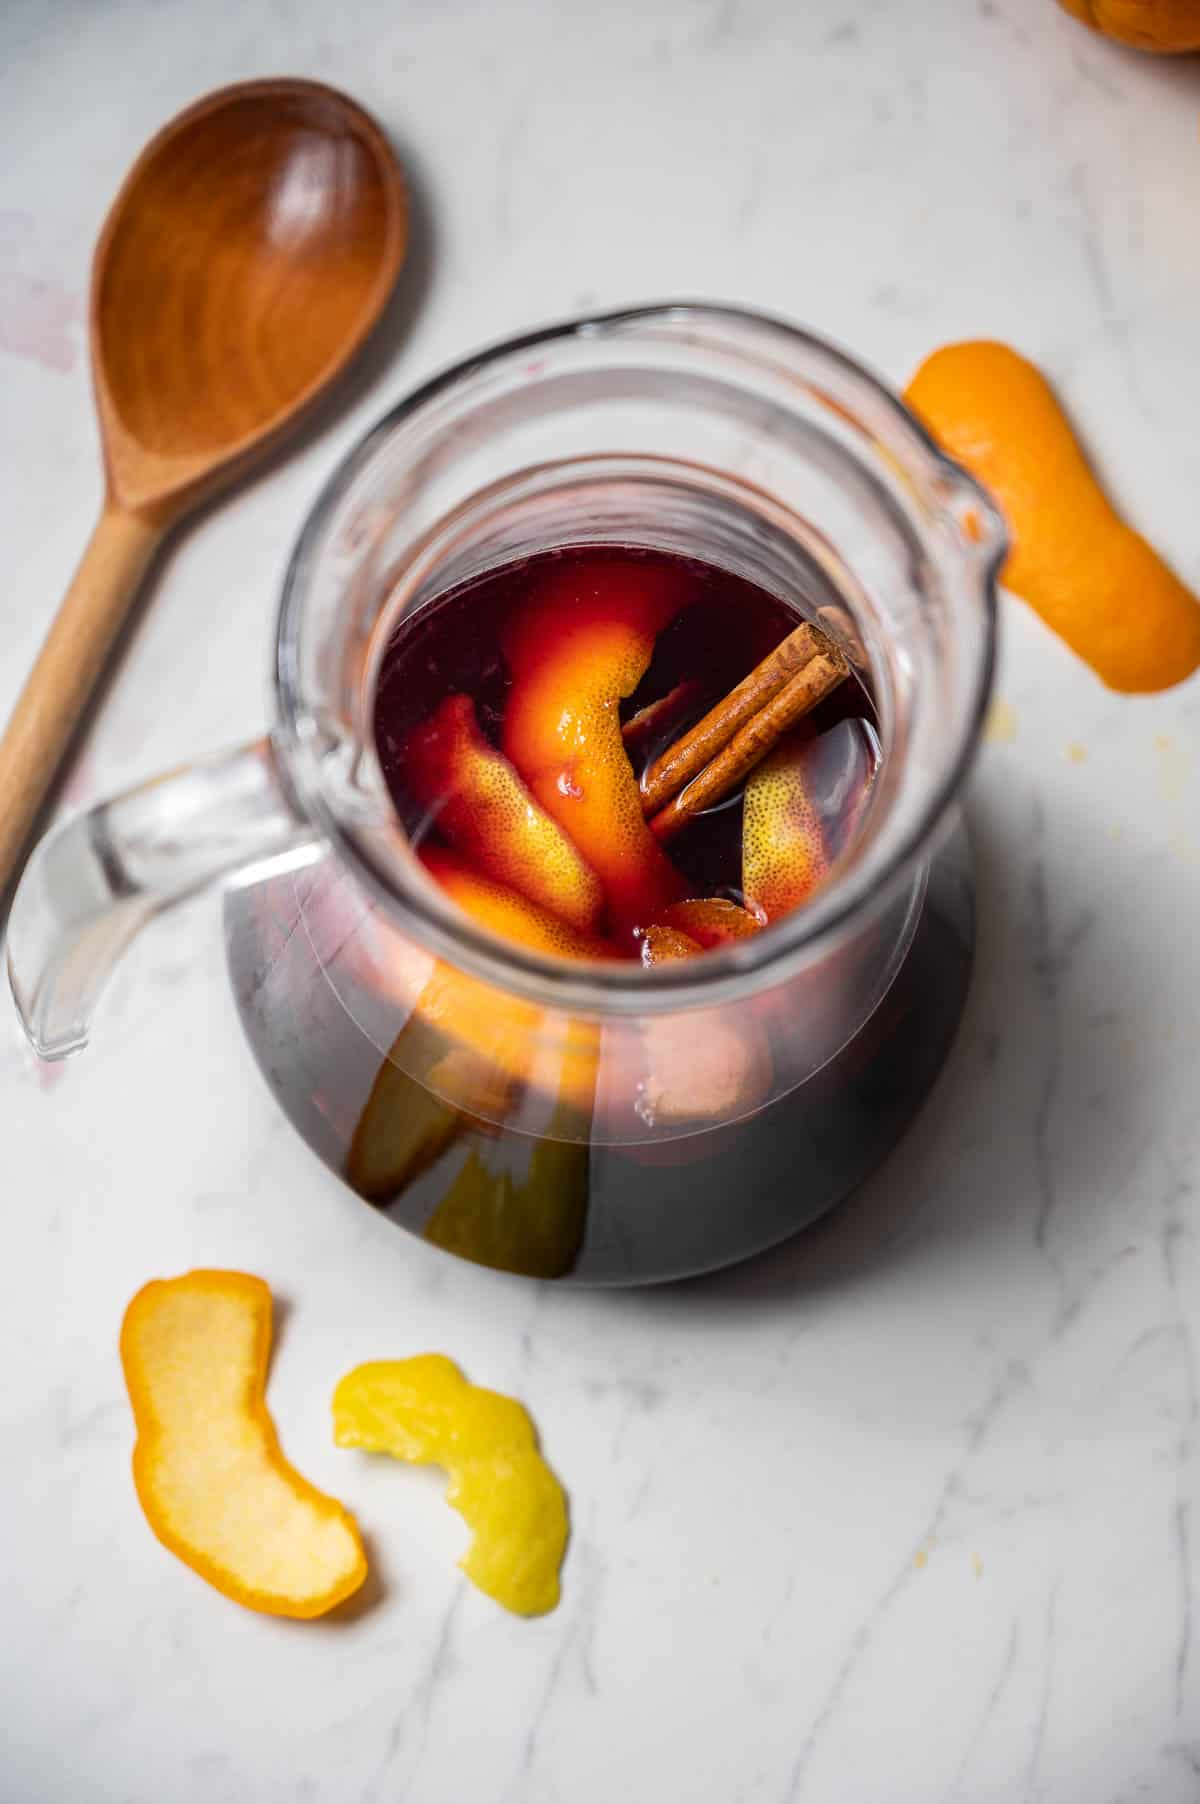 Pitcher of classic red sangria with citrus peel and cinnamon stick. A wooden spoon next to it.